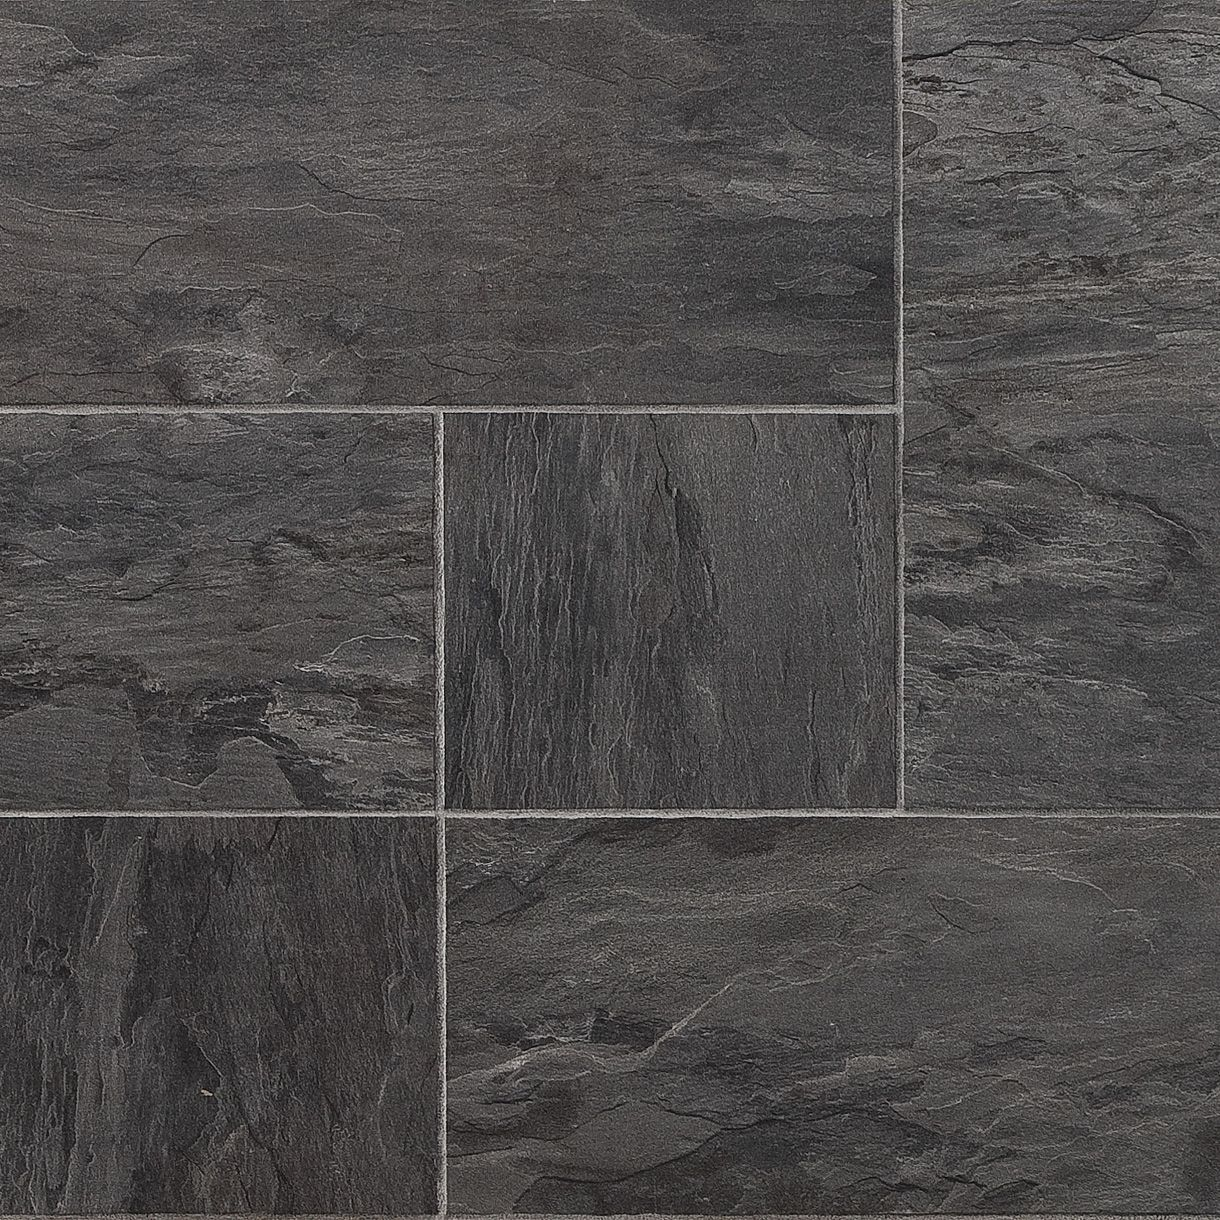 kitchens on clearance maple cabinets kitchen libretto natural slate effect laminate flooring 0.113 m² ...